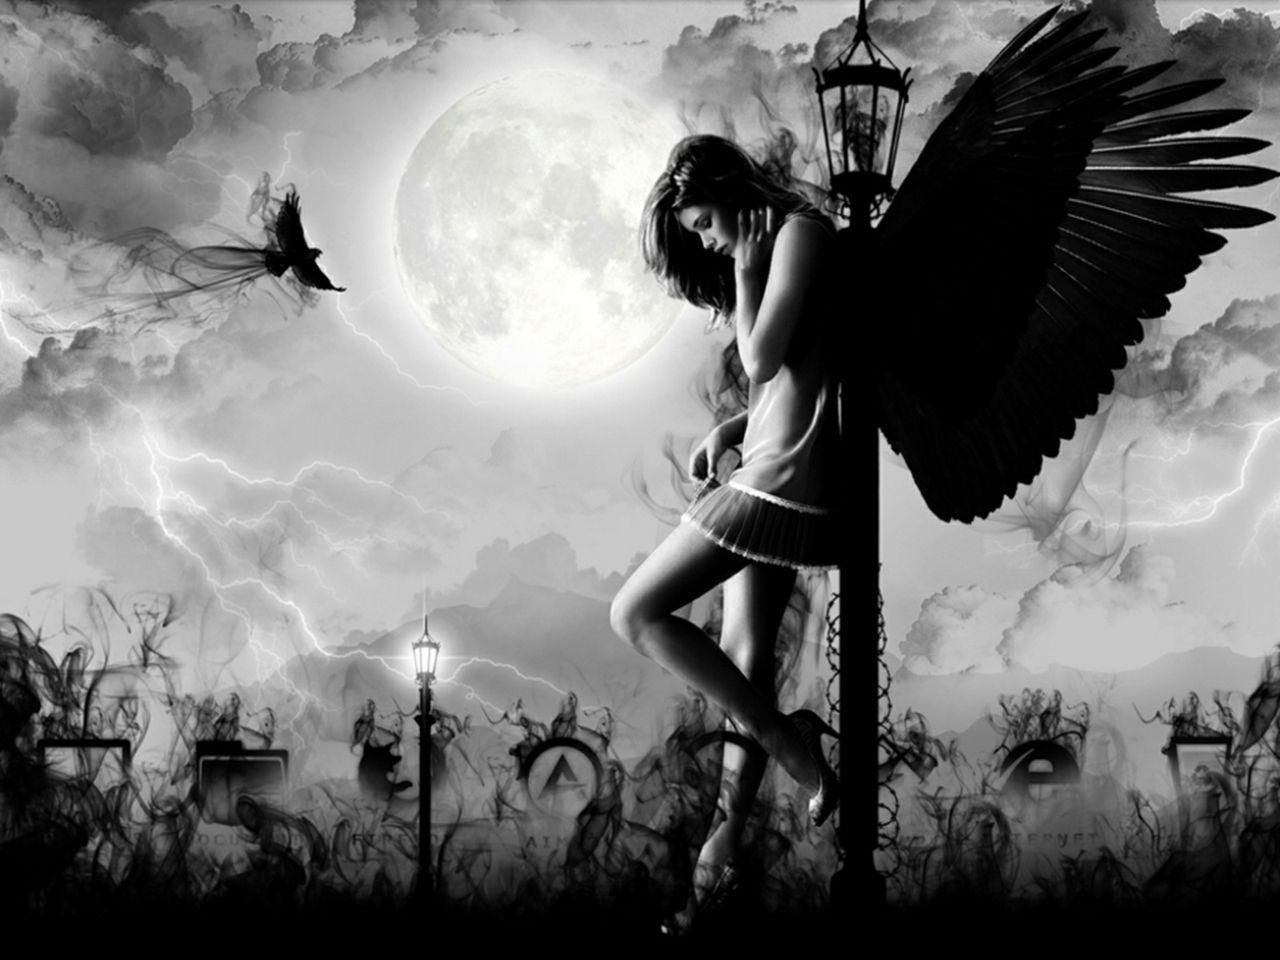 Dark Angel Wallpaper HD | Wallpaper | Dark angel wallpaper, Angel wallpaper, Sad angel